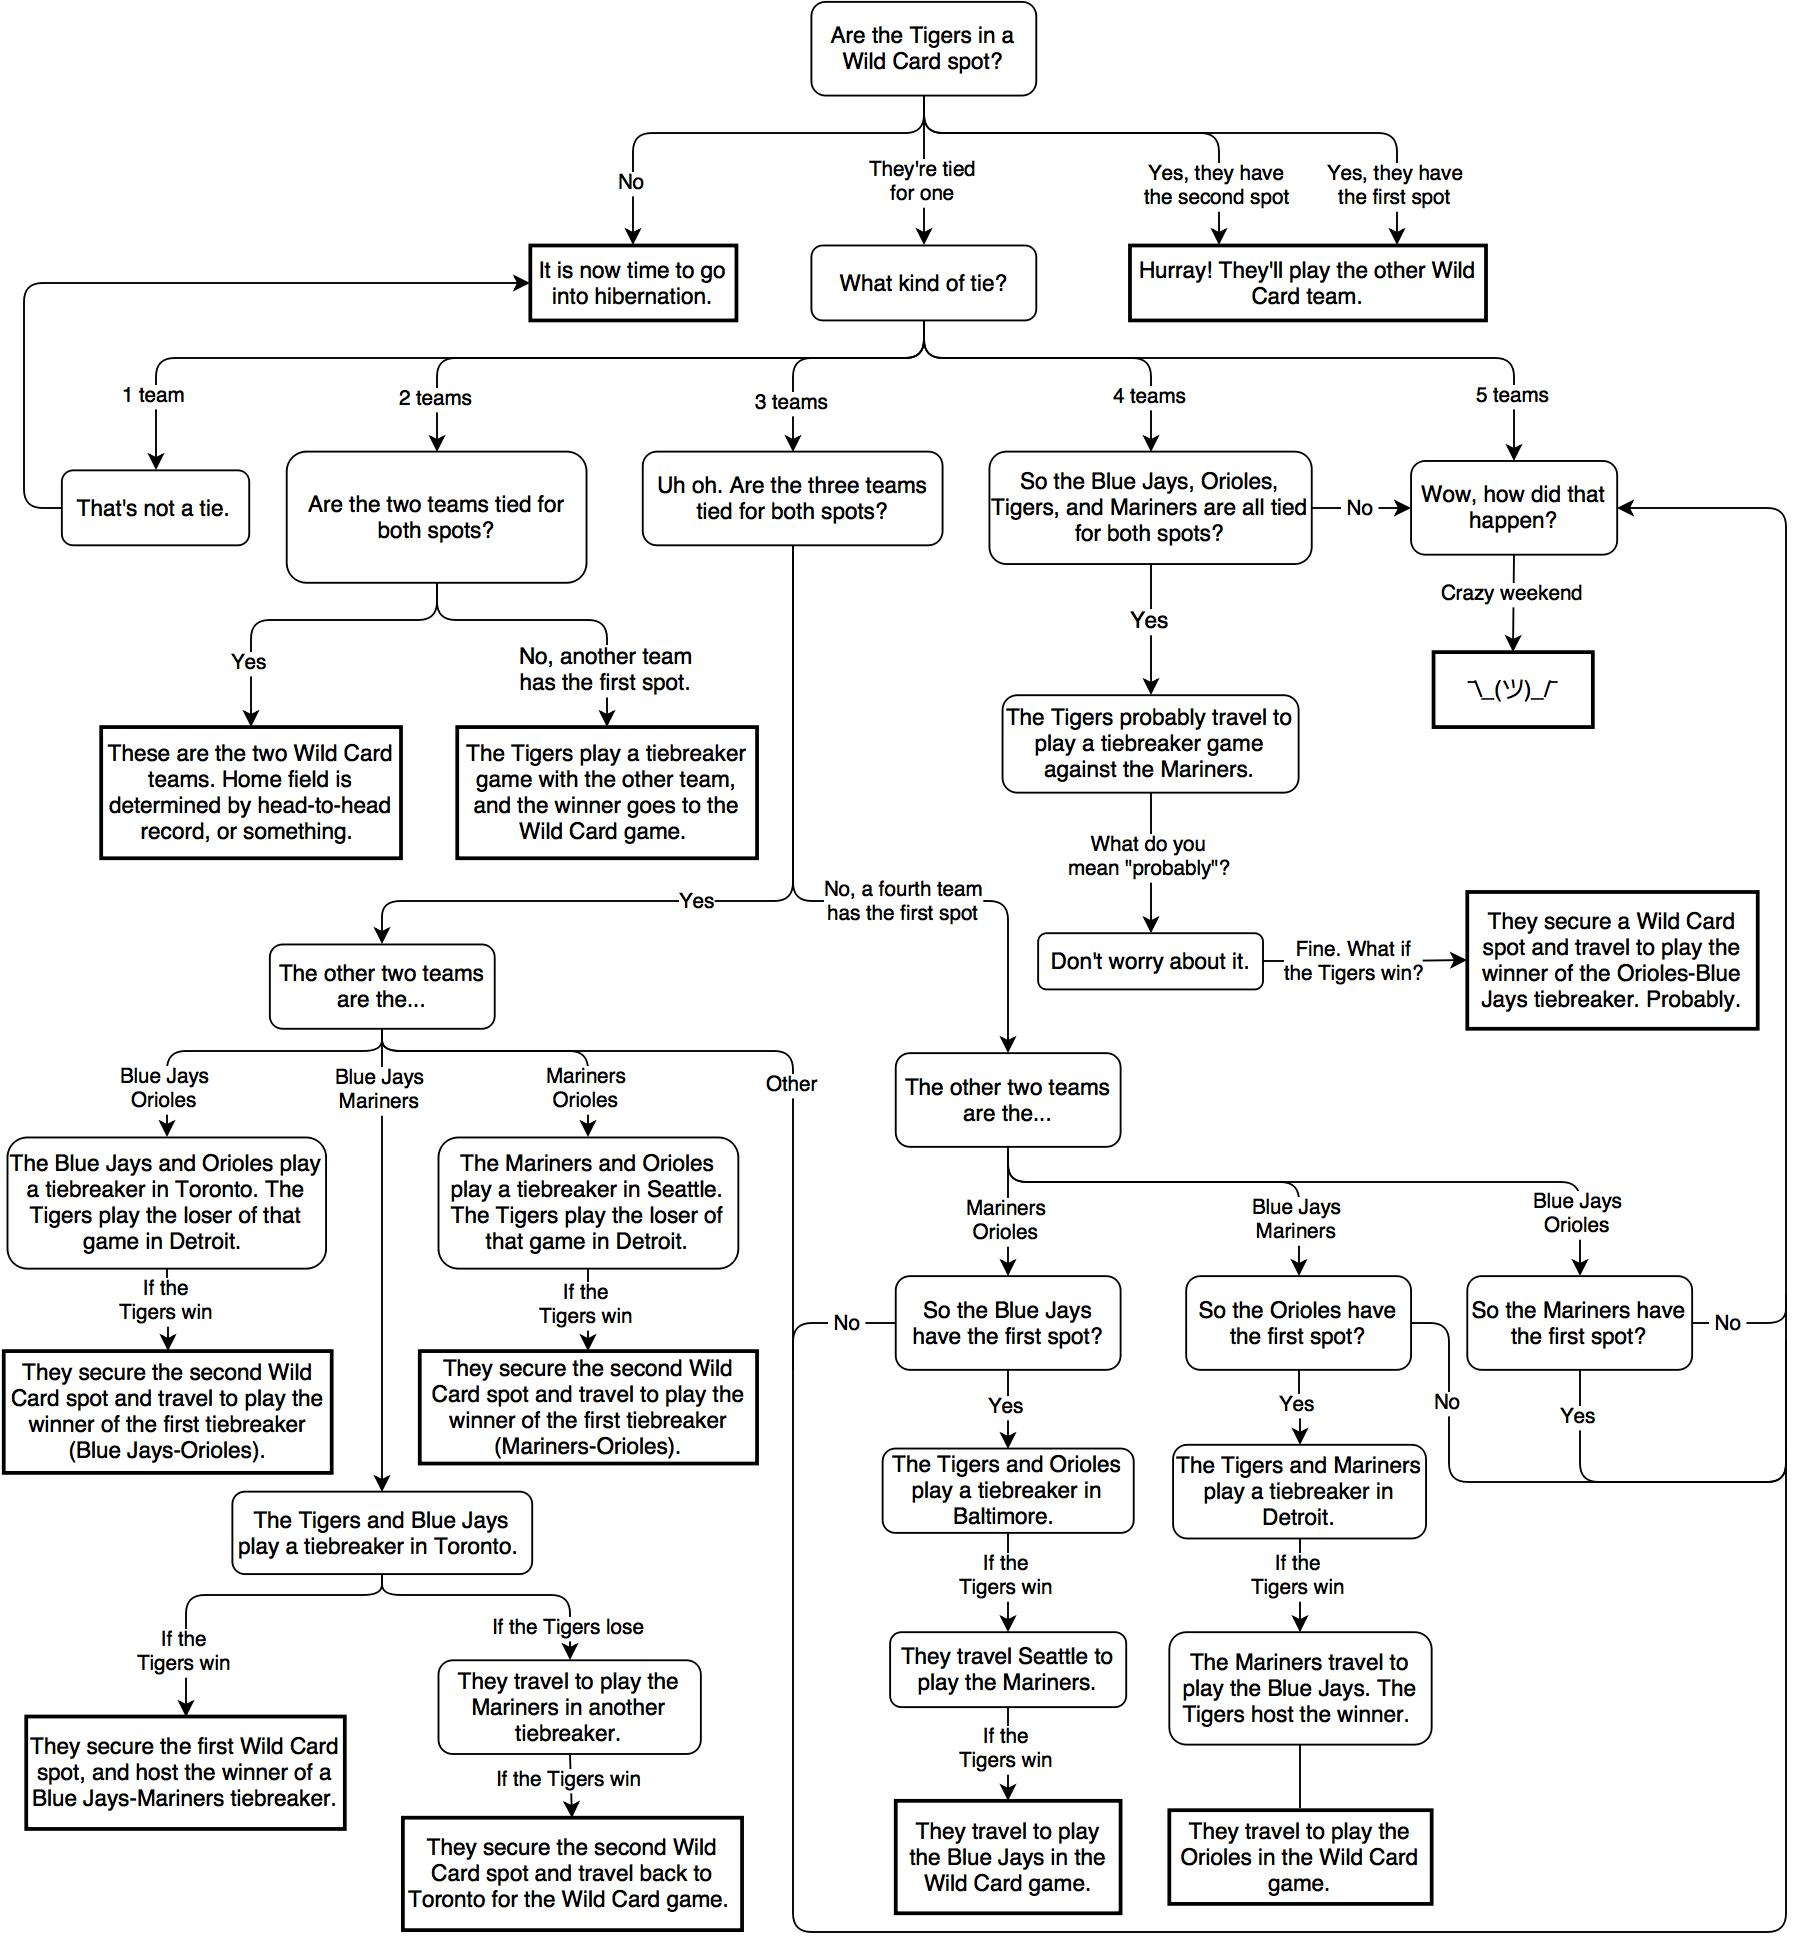 Use This Handy Flowchart To Figure Out What Happens Next